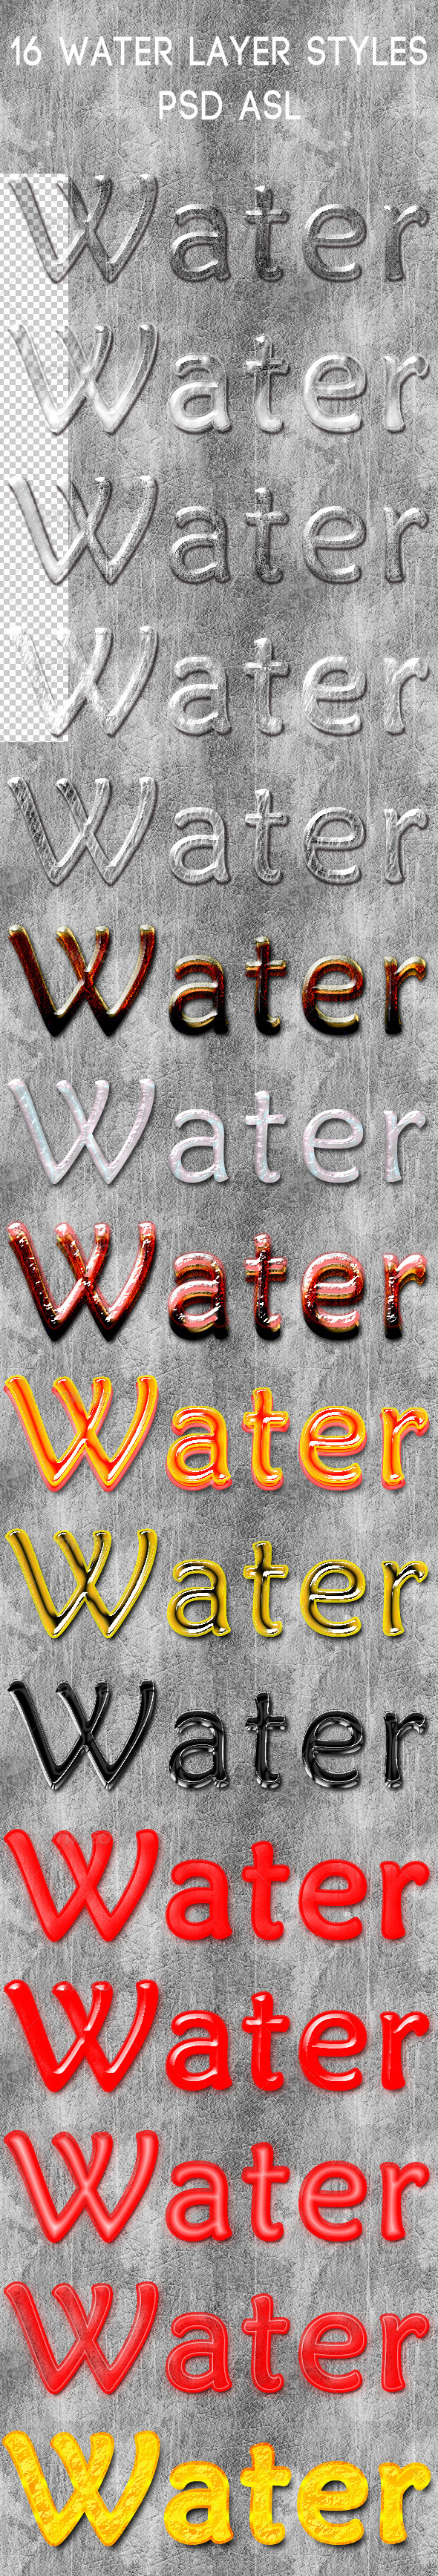 GraphicRiver 16 Water layer Styles 7012033